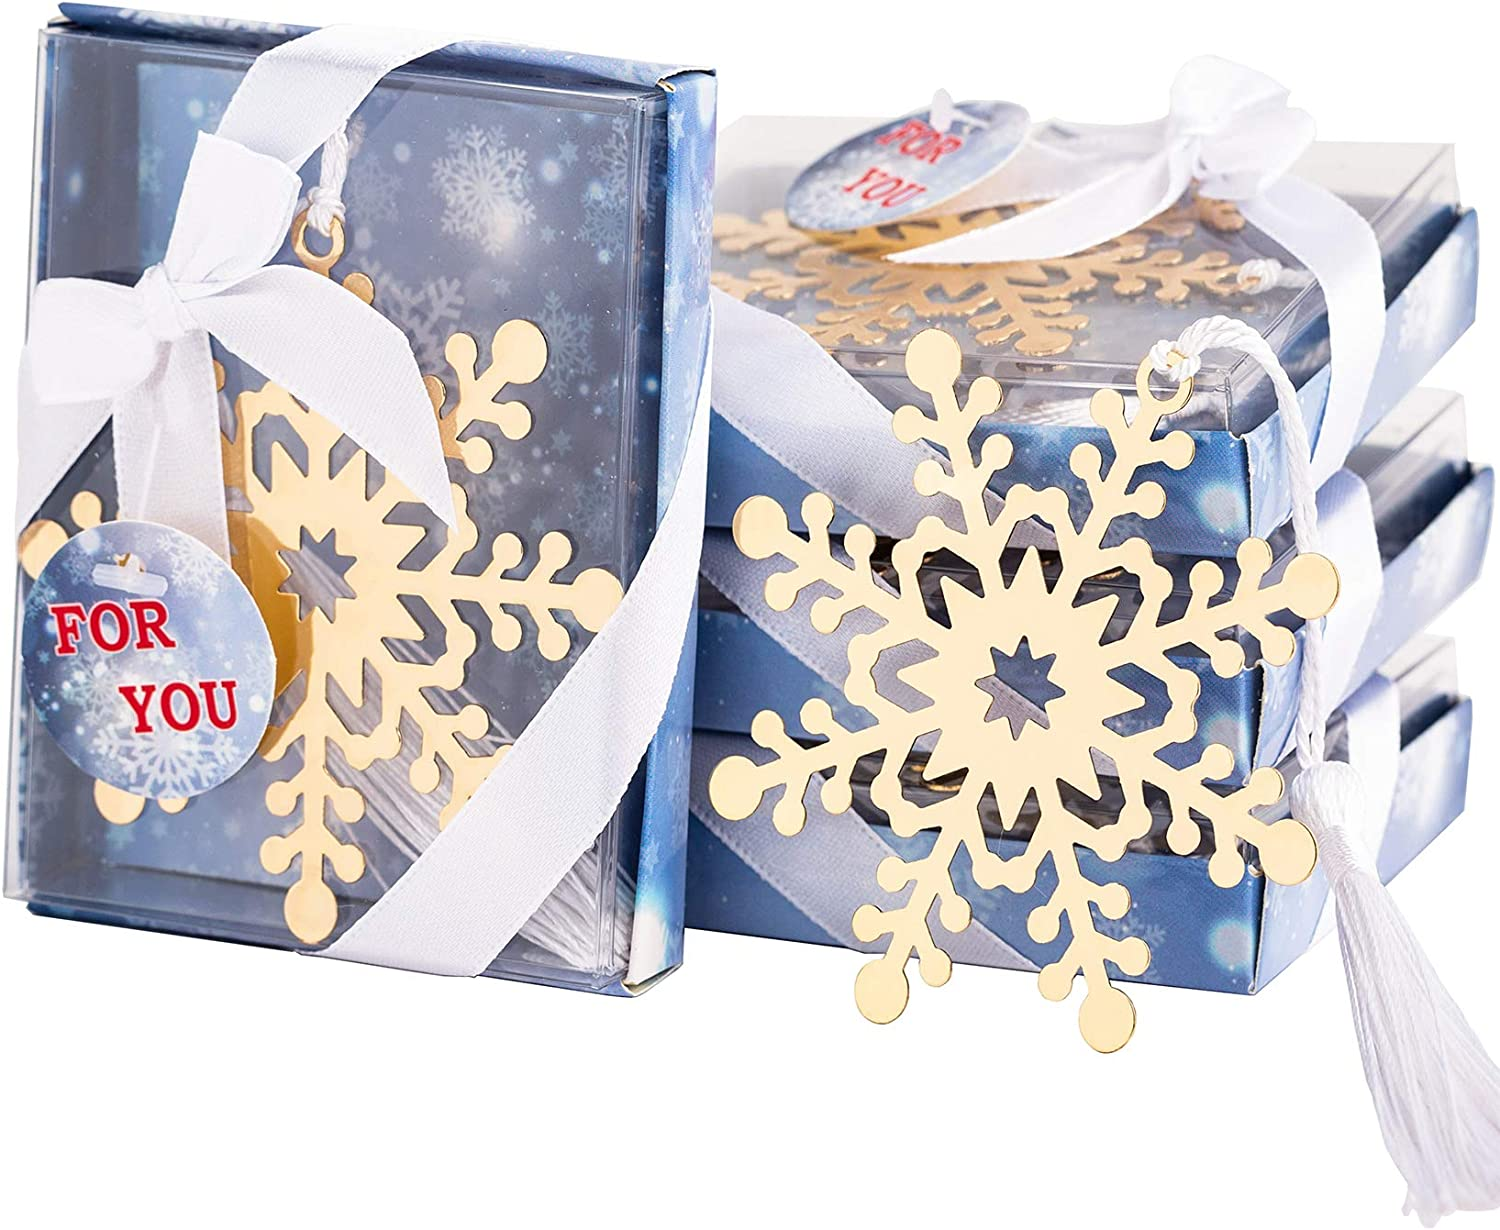 Amazon Com 12 Pcs Snowflake Bookmarks Wedding Party Favors Office Party Decorations Gifts Christmas Party Decor Souvenirs With Individual Gift Package Office Products